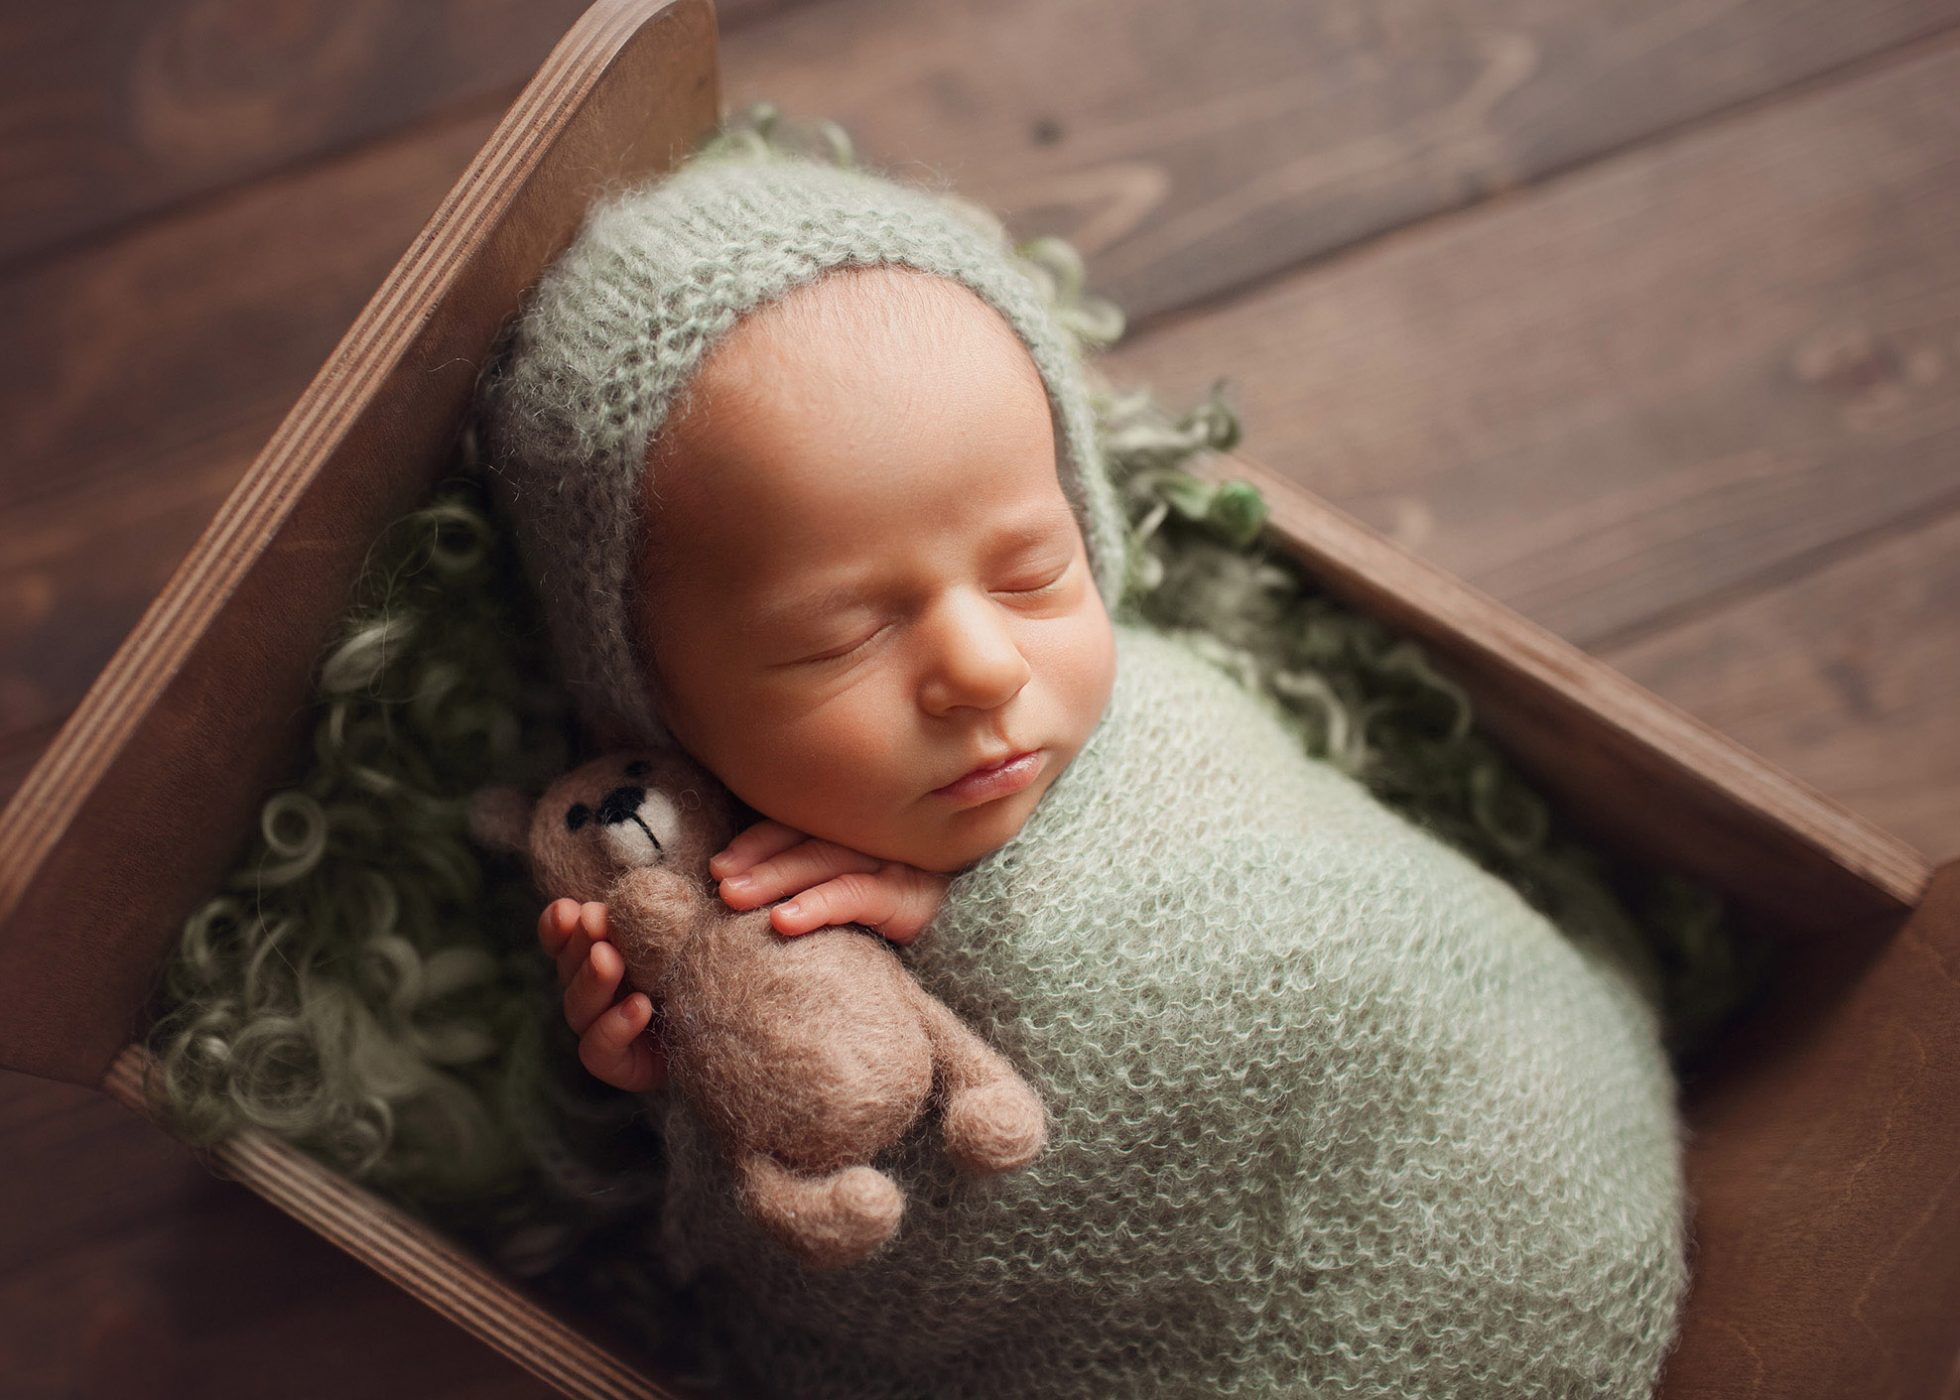 Cleveland Ohio Newborn photographer poses newborn in prop using sage green wrap and bear lovey